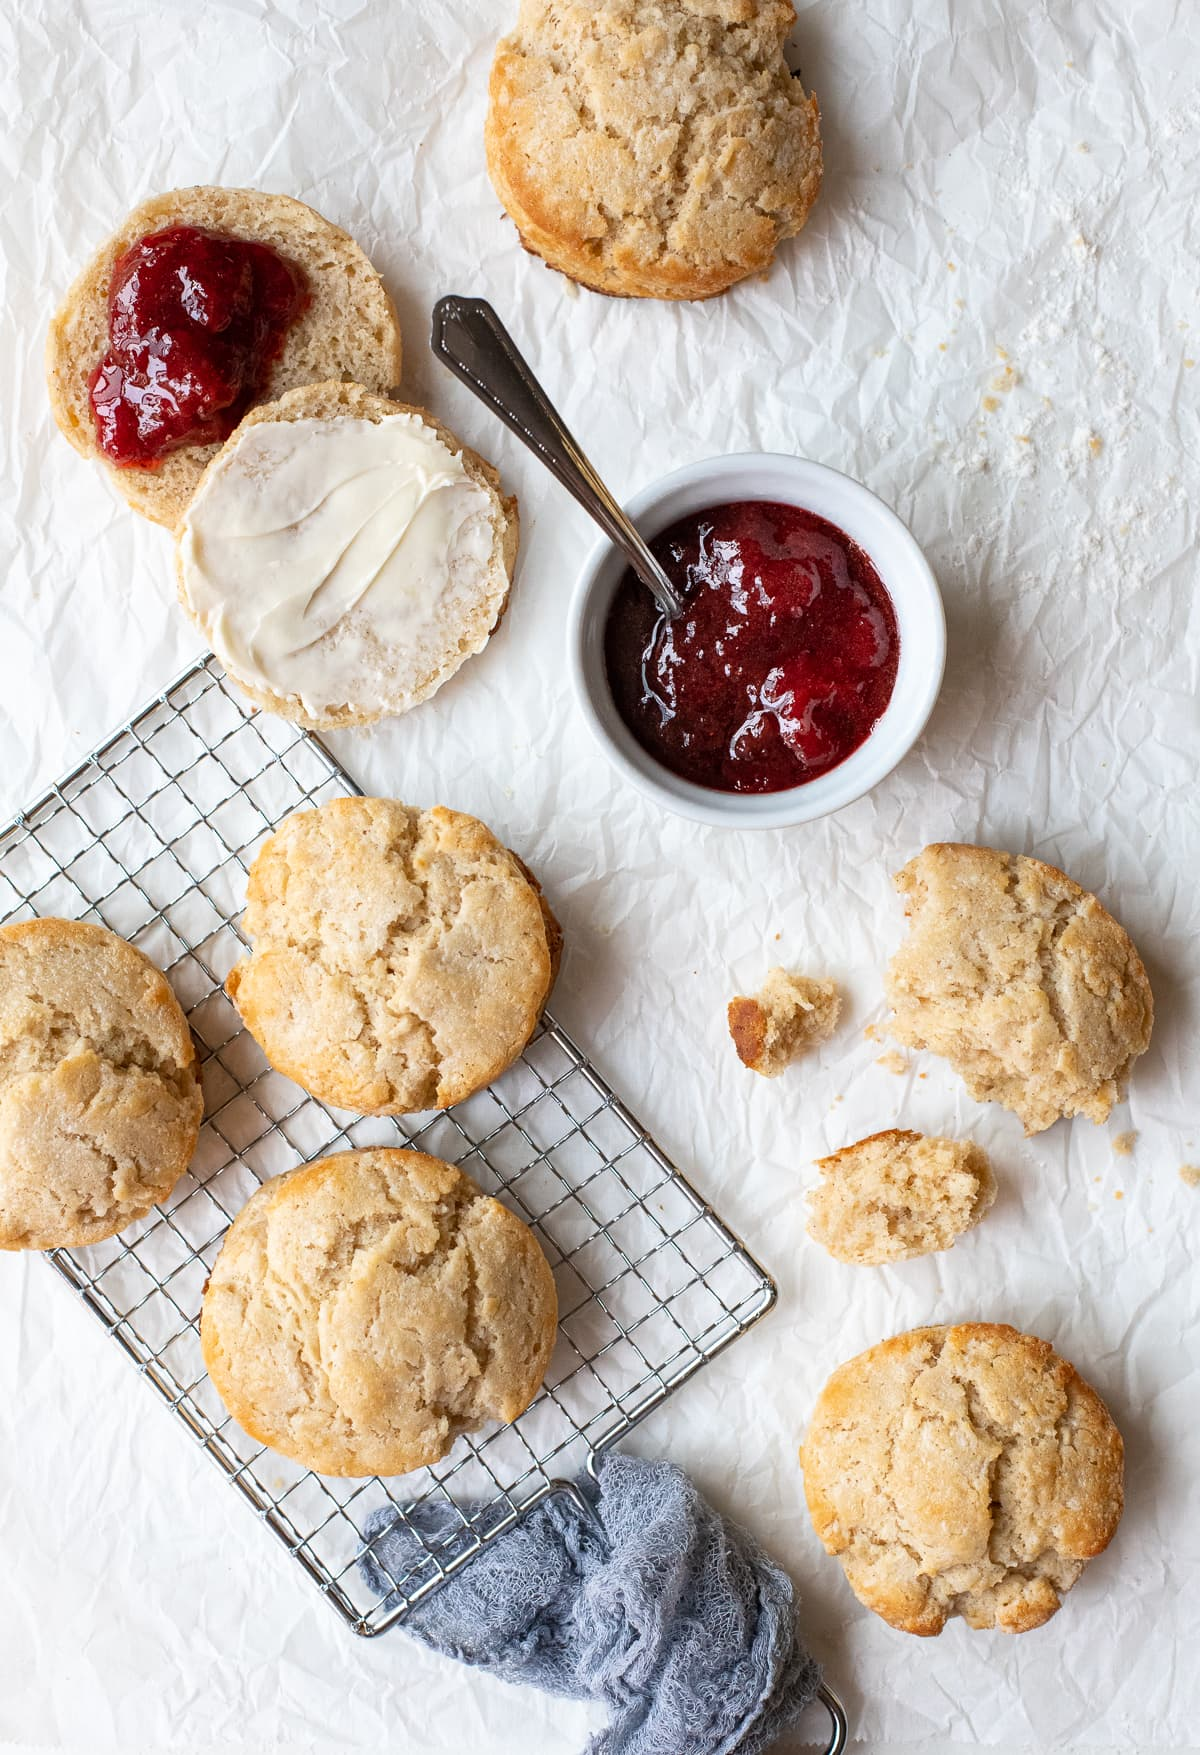 Overhead view of biscuits scattered on a sheet of parchment paper, with butter and jam being used as garnishes.